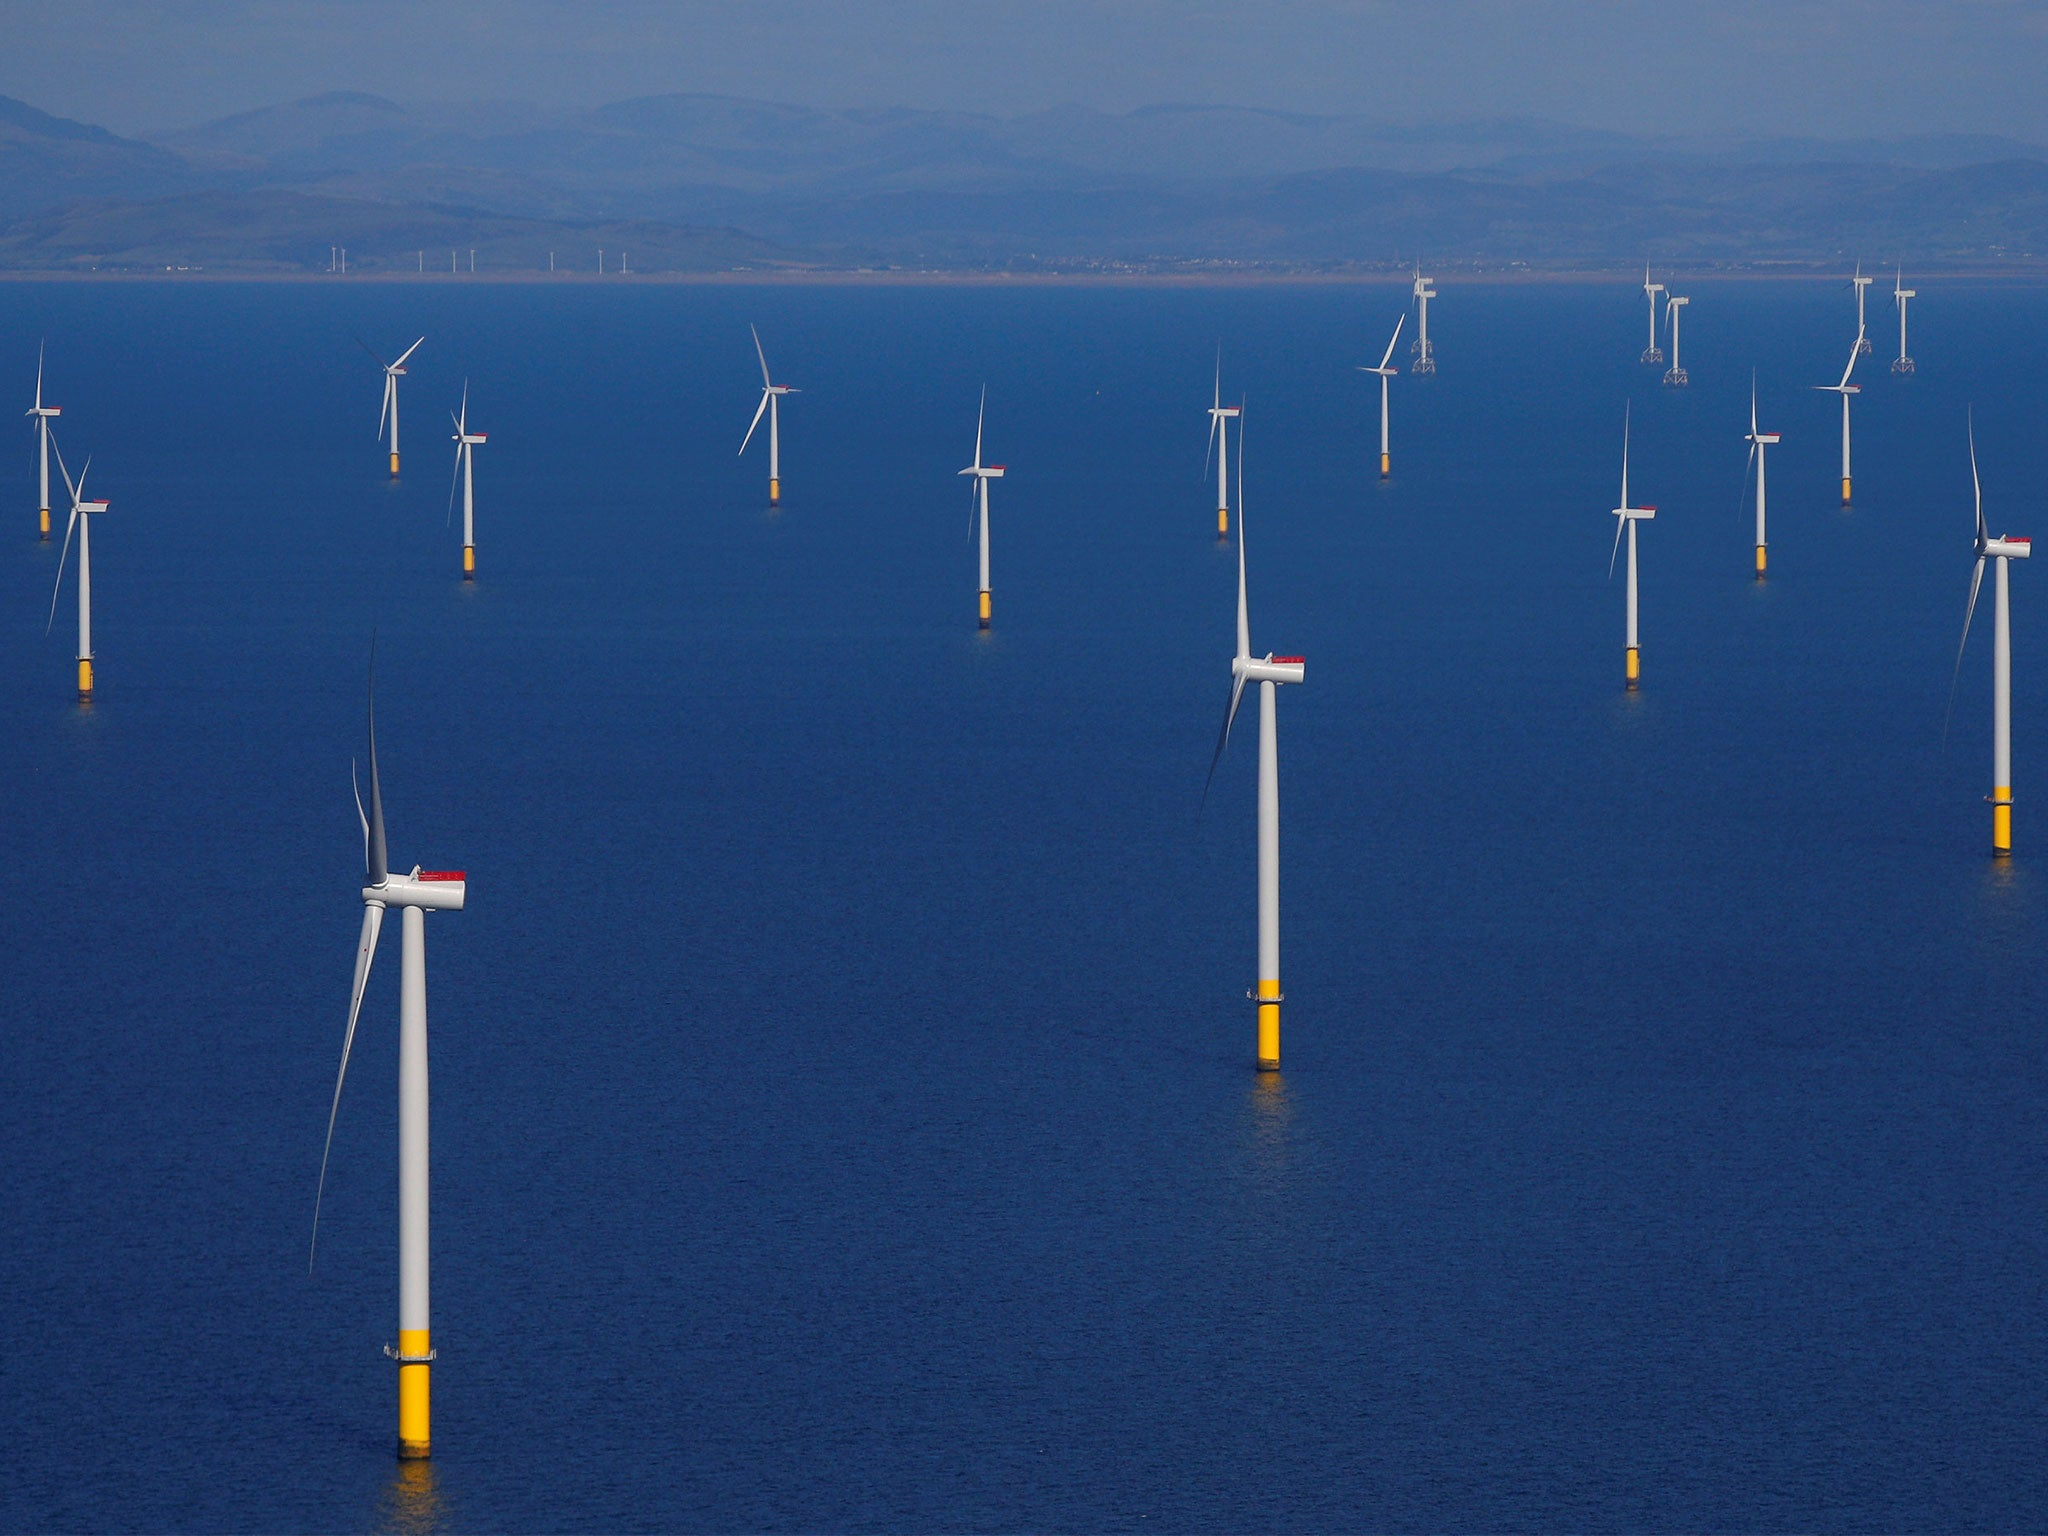 Windfarms - latest news, breaking stories and comment - The